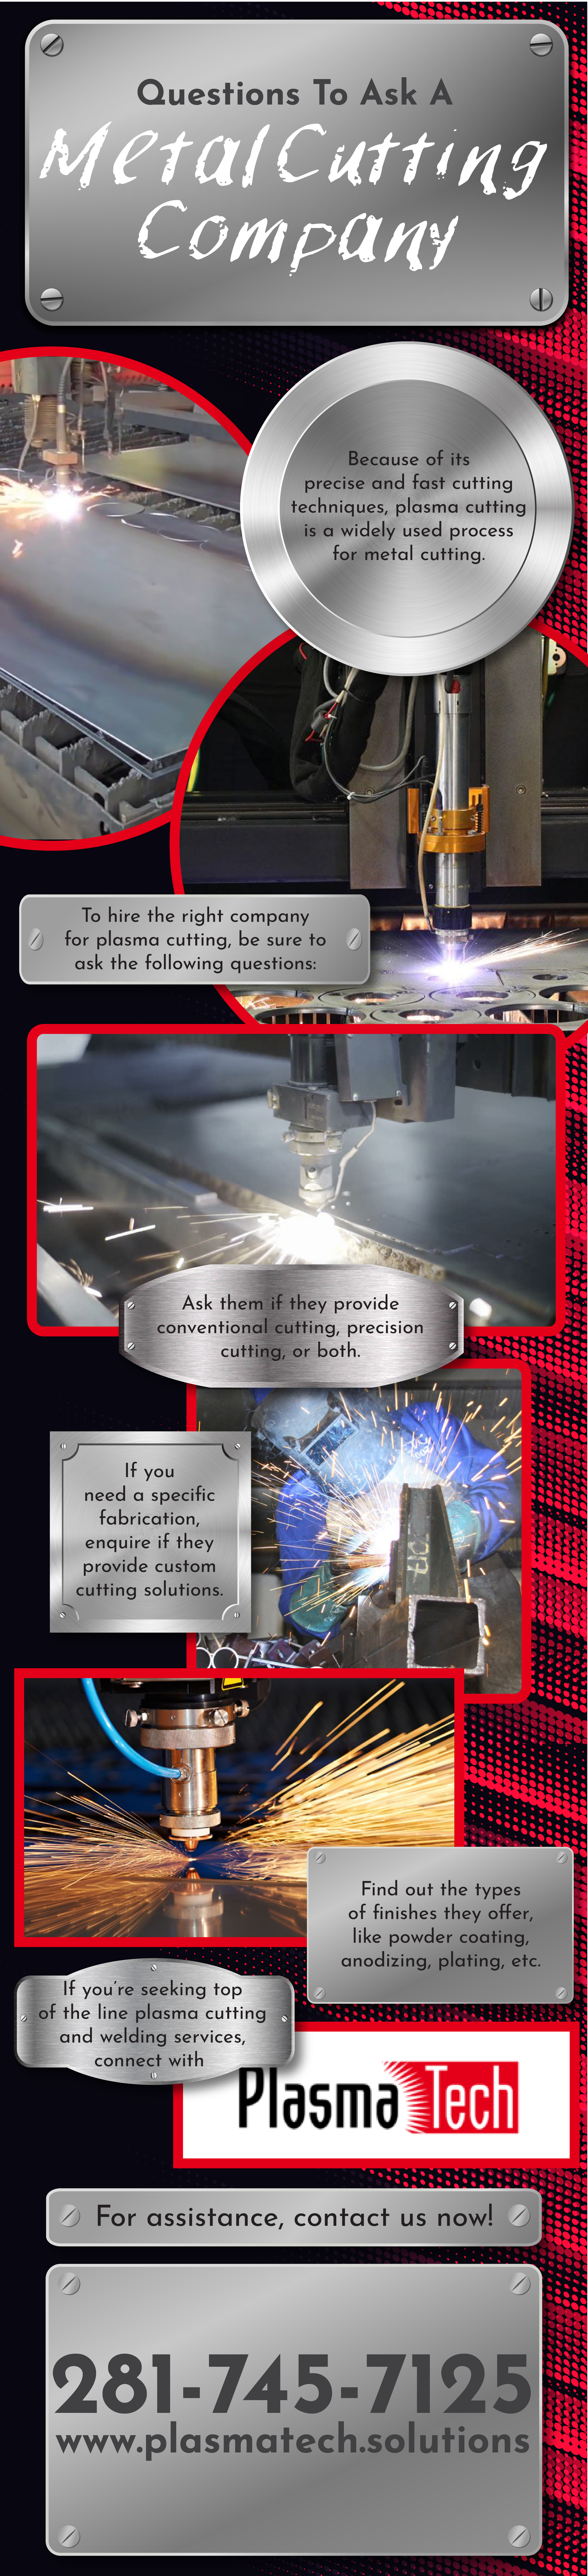 questins to ask for hiring metal and welding company